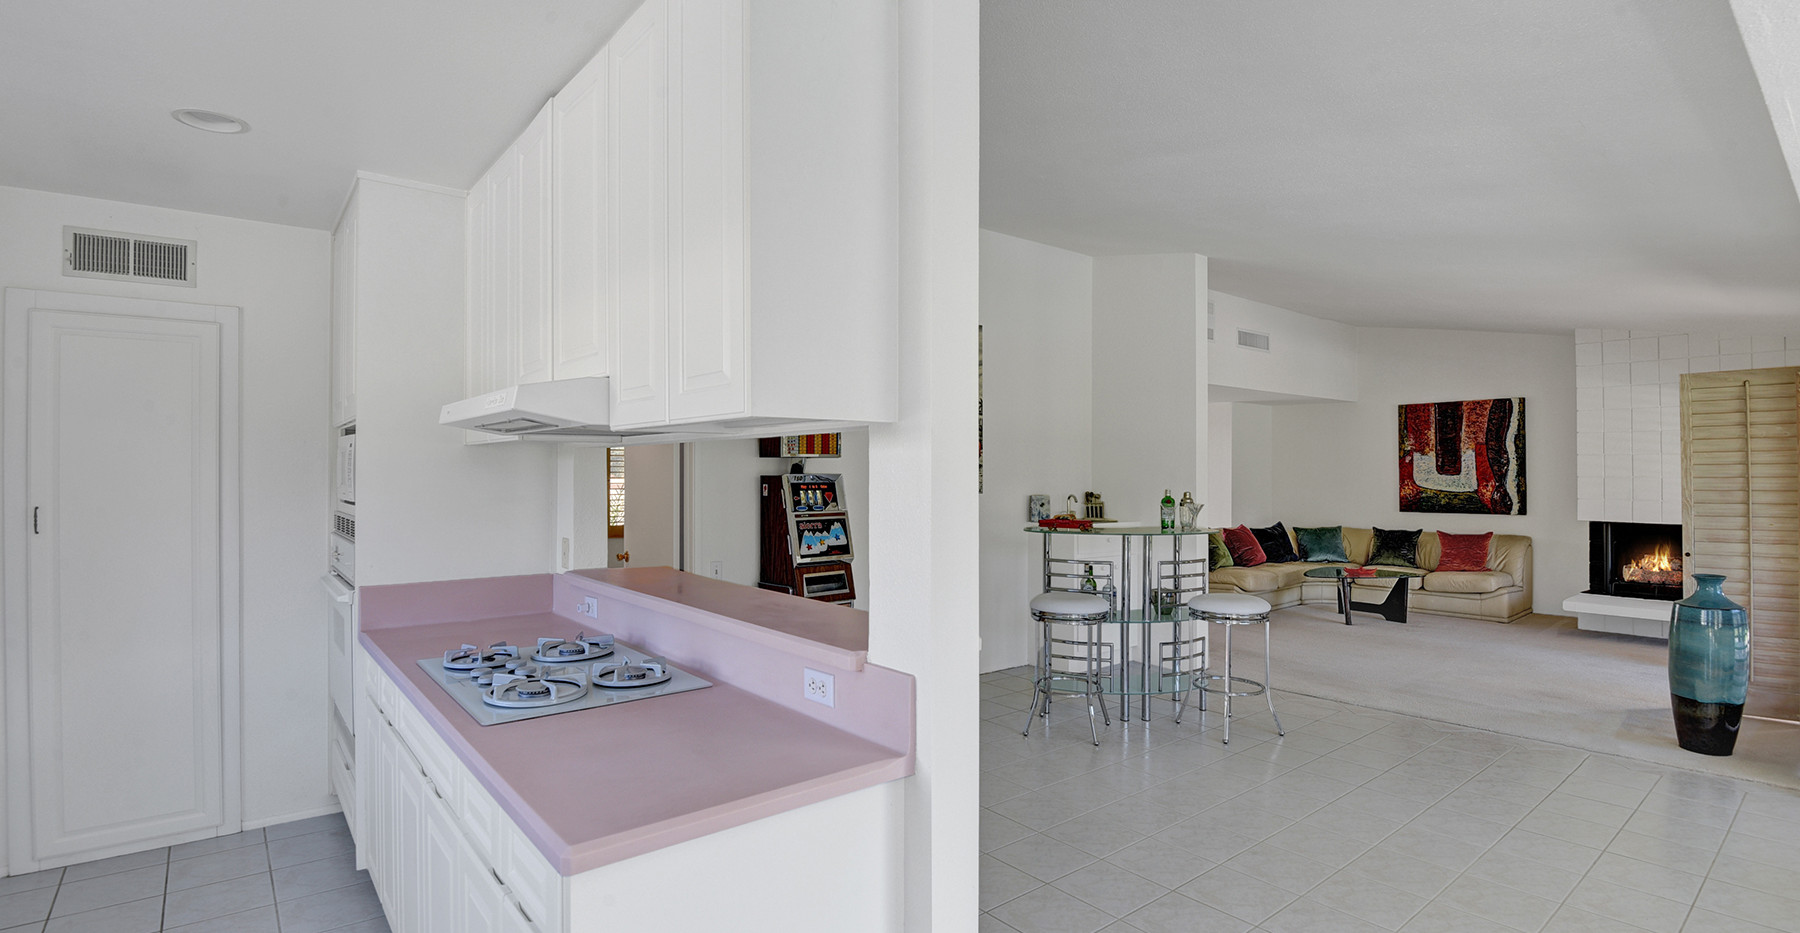 KITCHEN TO BAR AND LIVING ROOM MLS.jpg